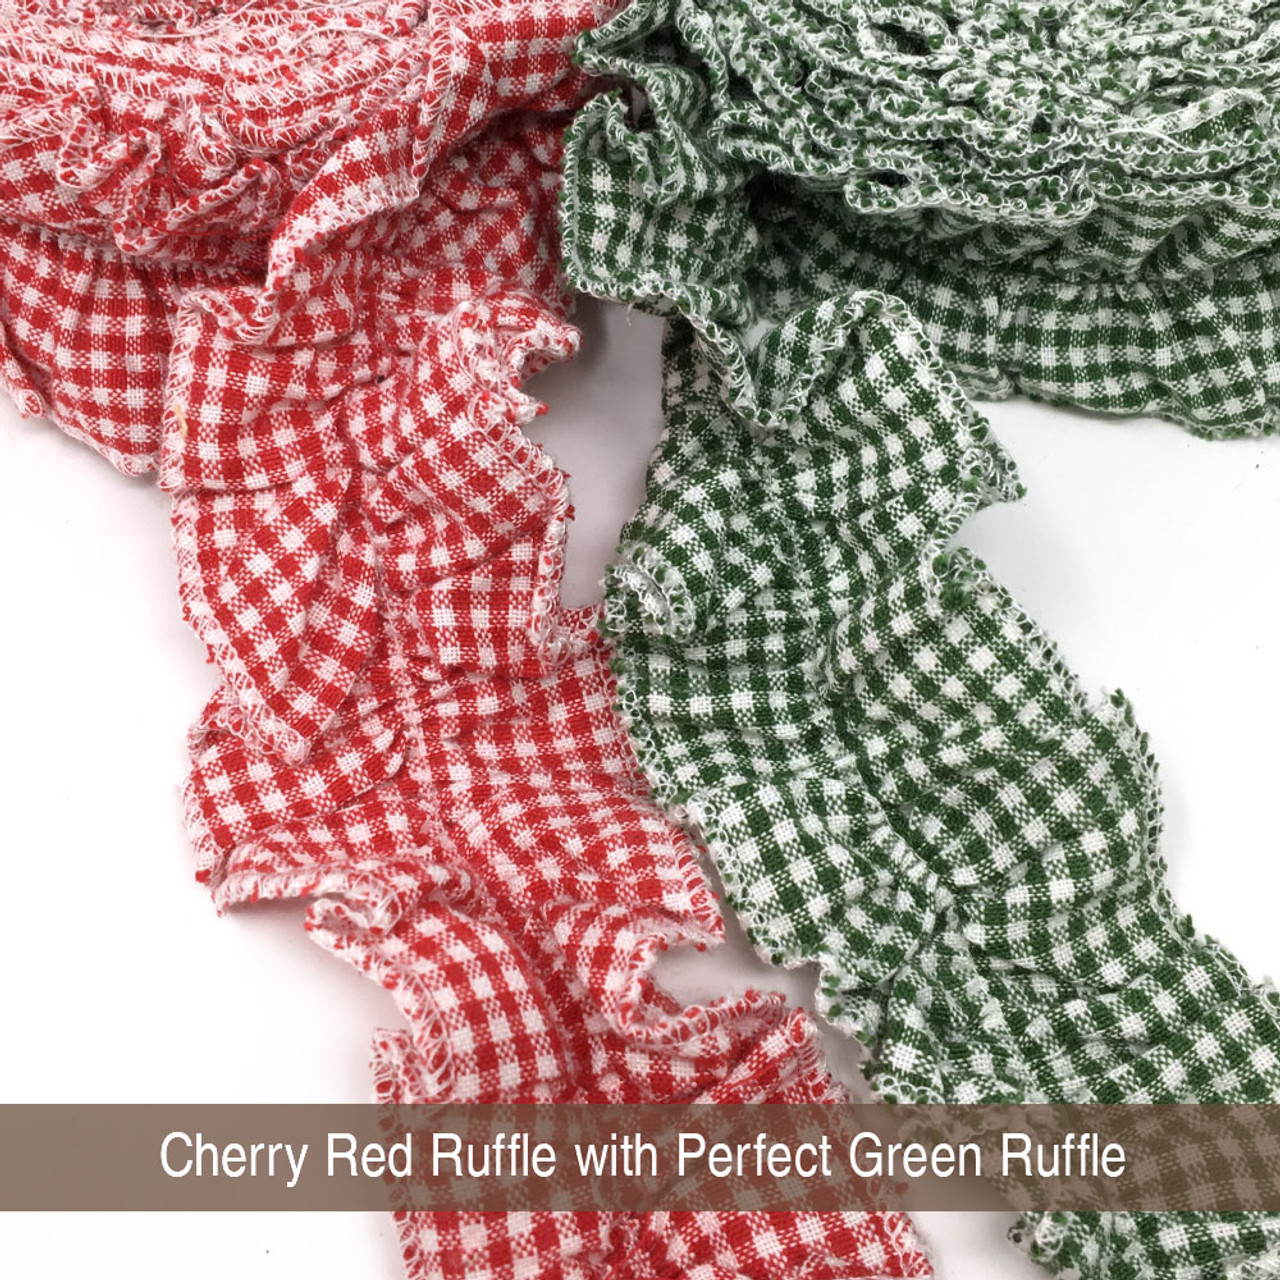 Cherry Red 2 Ruffled Trim/Garland  - 1 roll - 144 inches (12 feet)